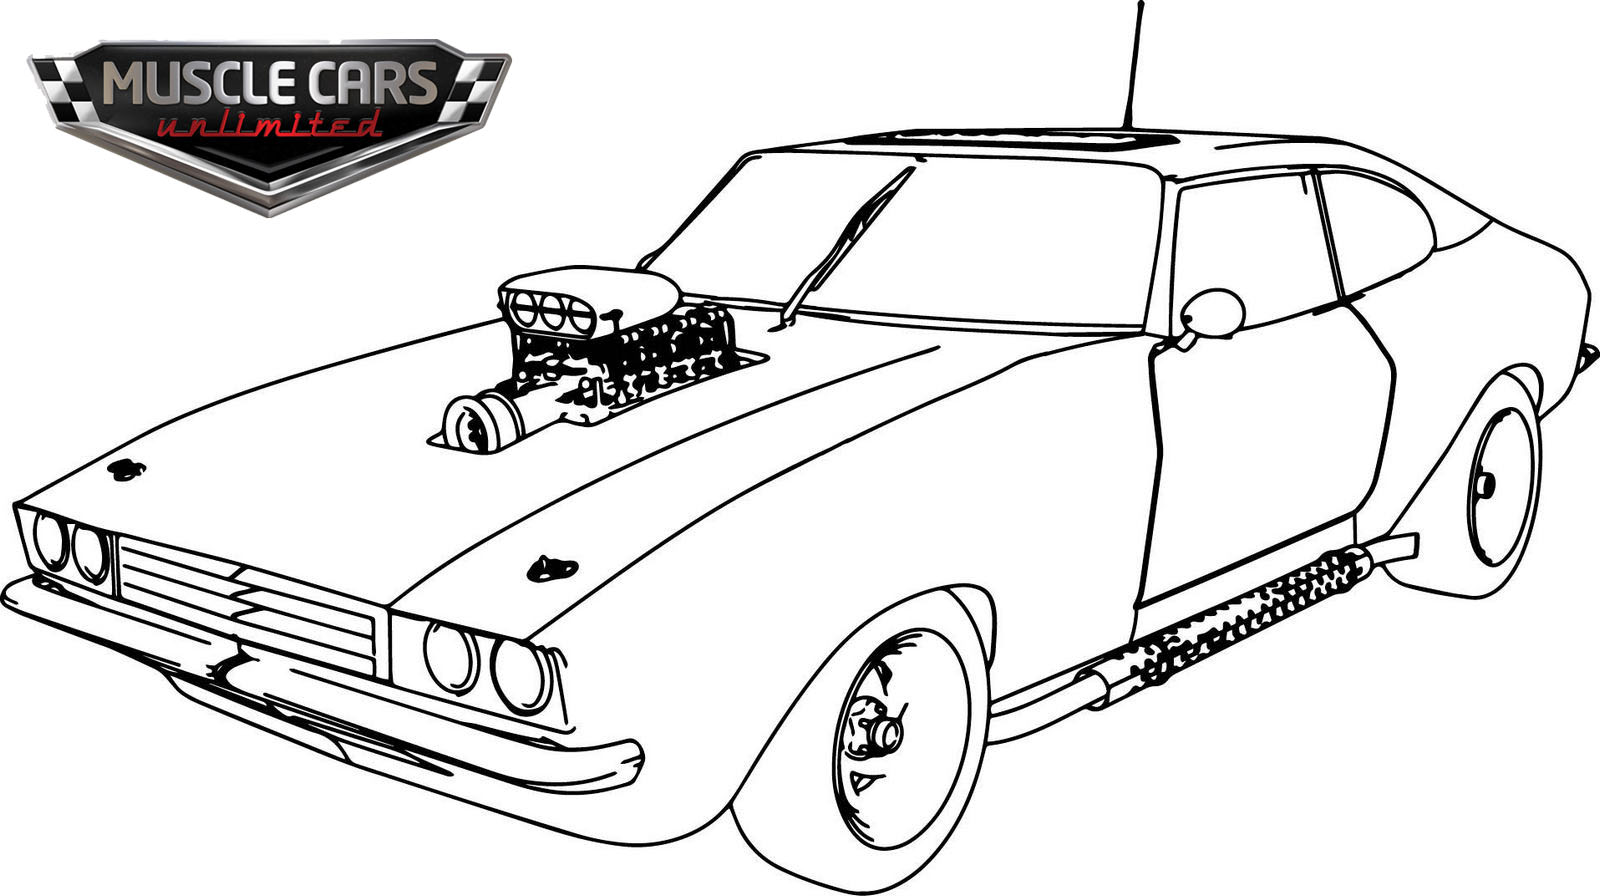 Old Sport Muscle Car Coloring Page for Boys